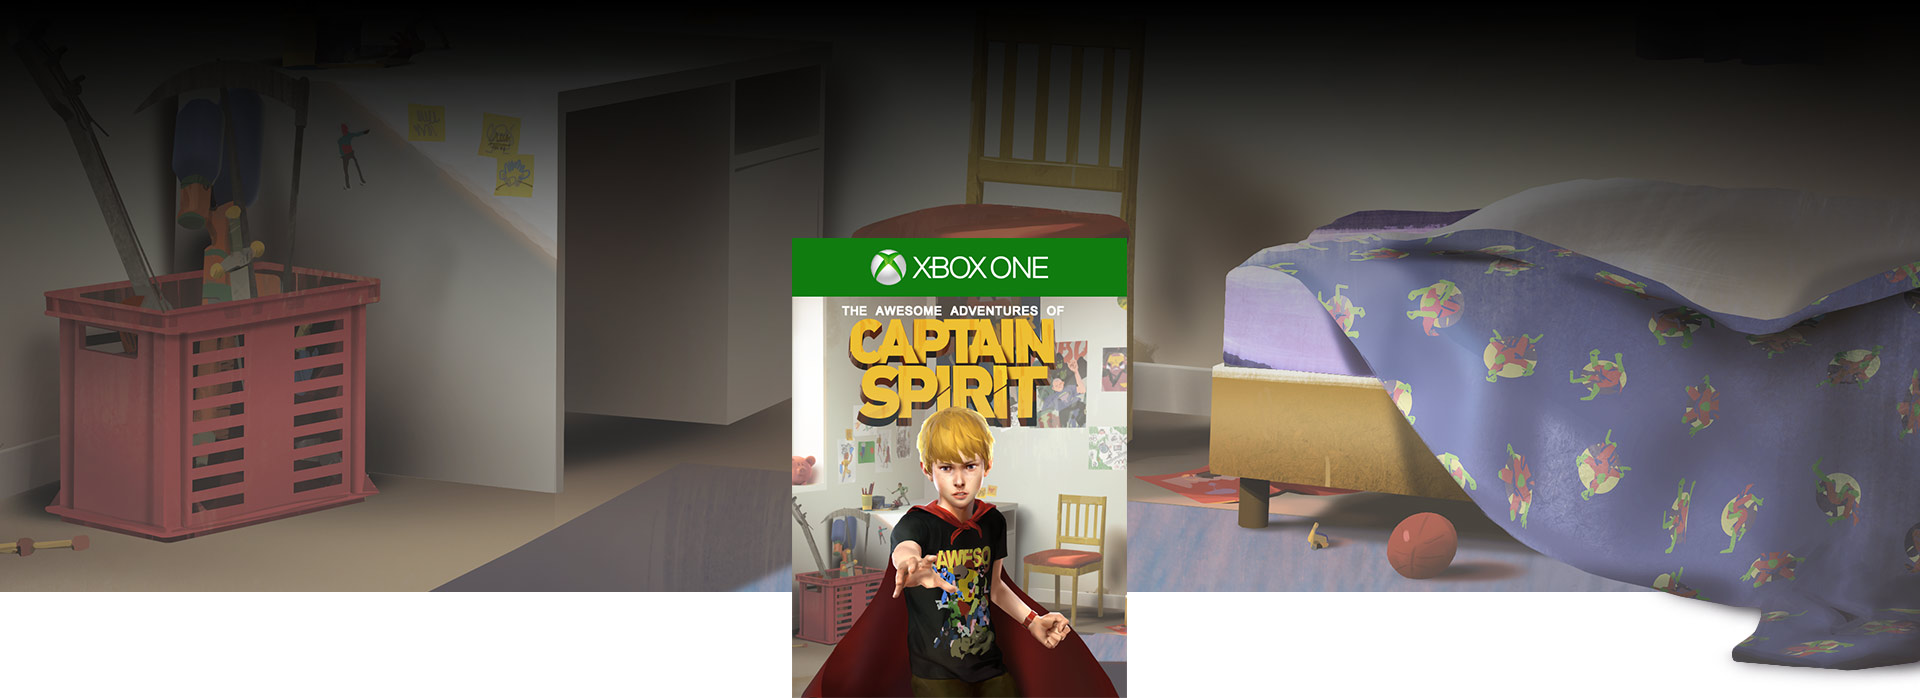 The Awesome Adventures of Captain Spirit boxshot, Background of Chris' bedroom